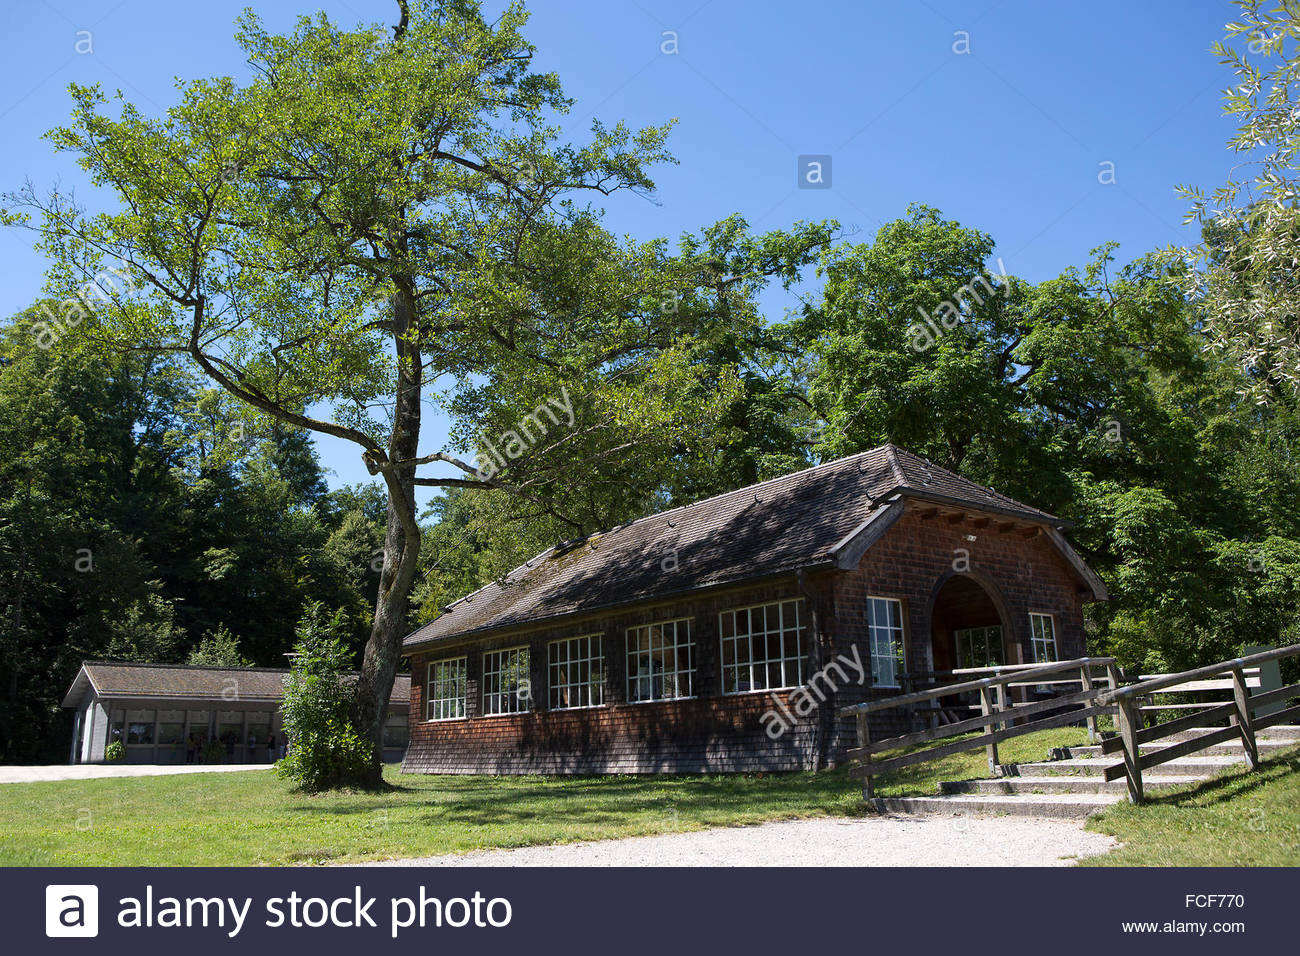 Entrance of the isle of Frauenchiemsee in Bavaria, Germany in summertime Stock Photo